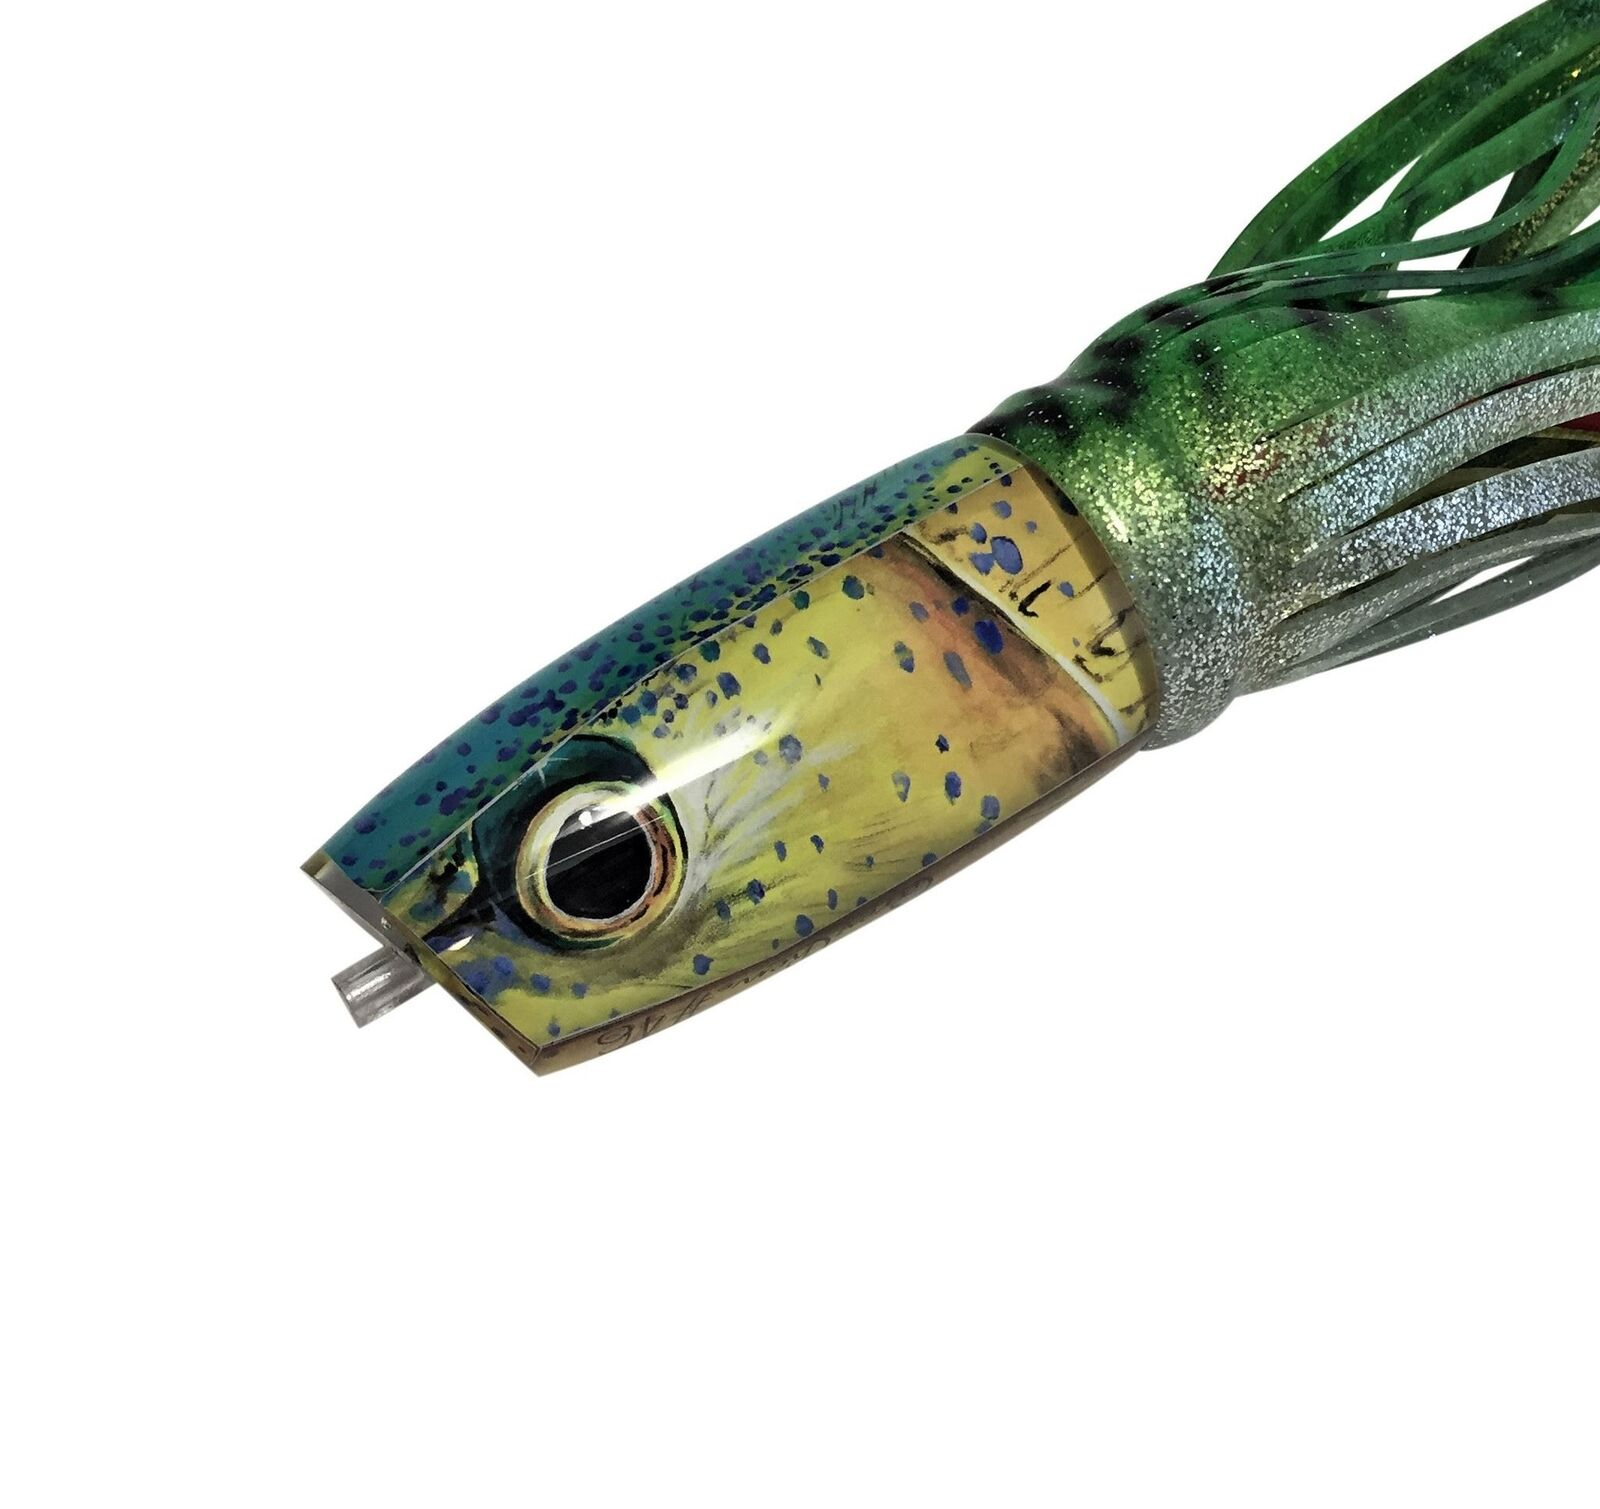 Carey Chen Mini Mahi Lure